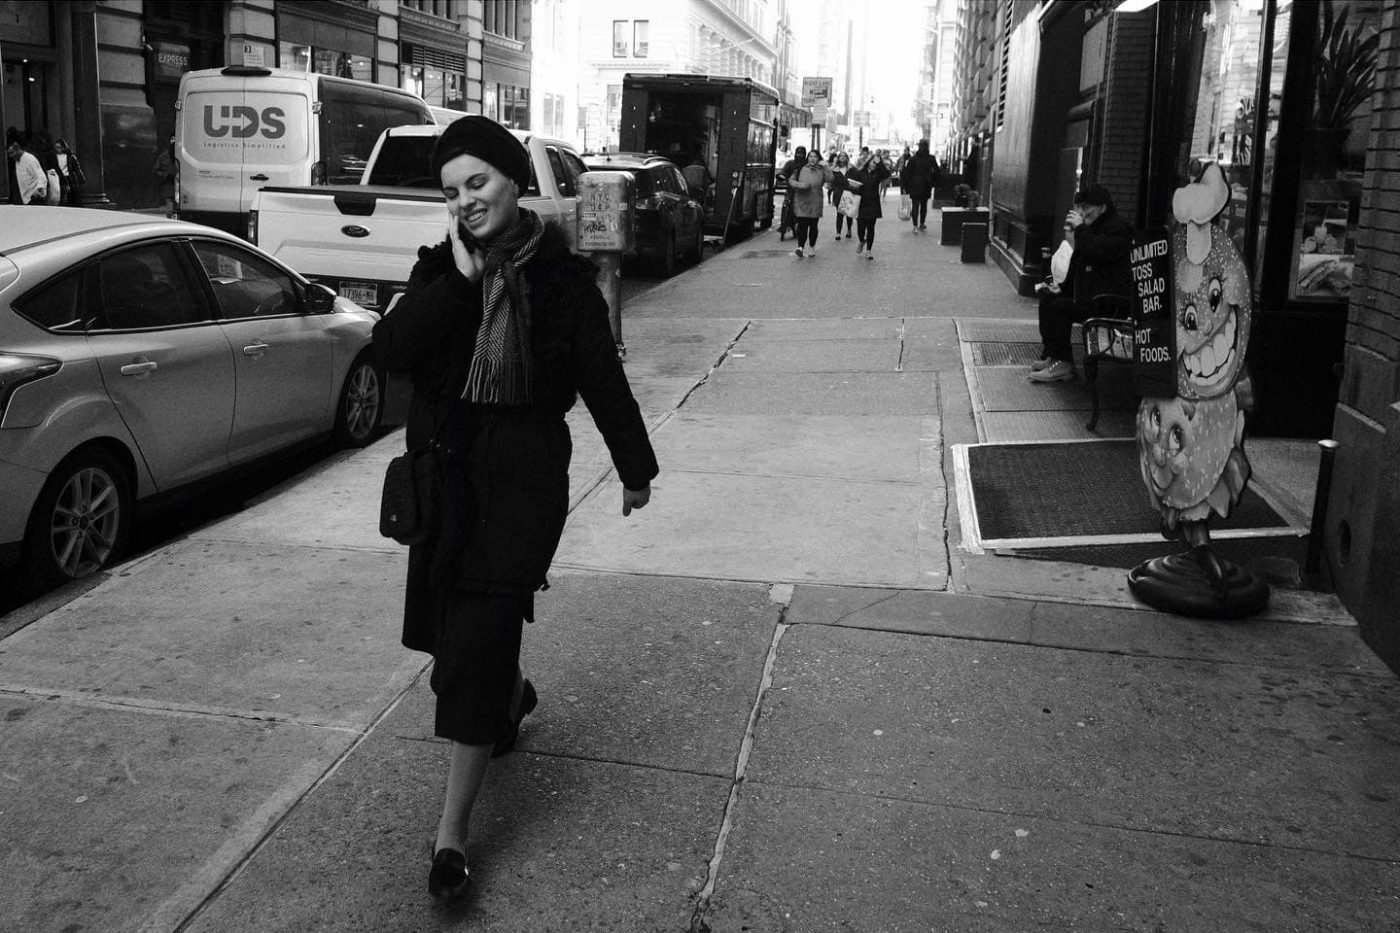 orthodox jewish woman walking while talking on phone, wearing smile on her face